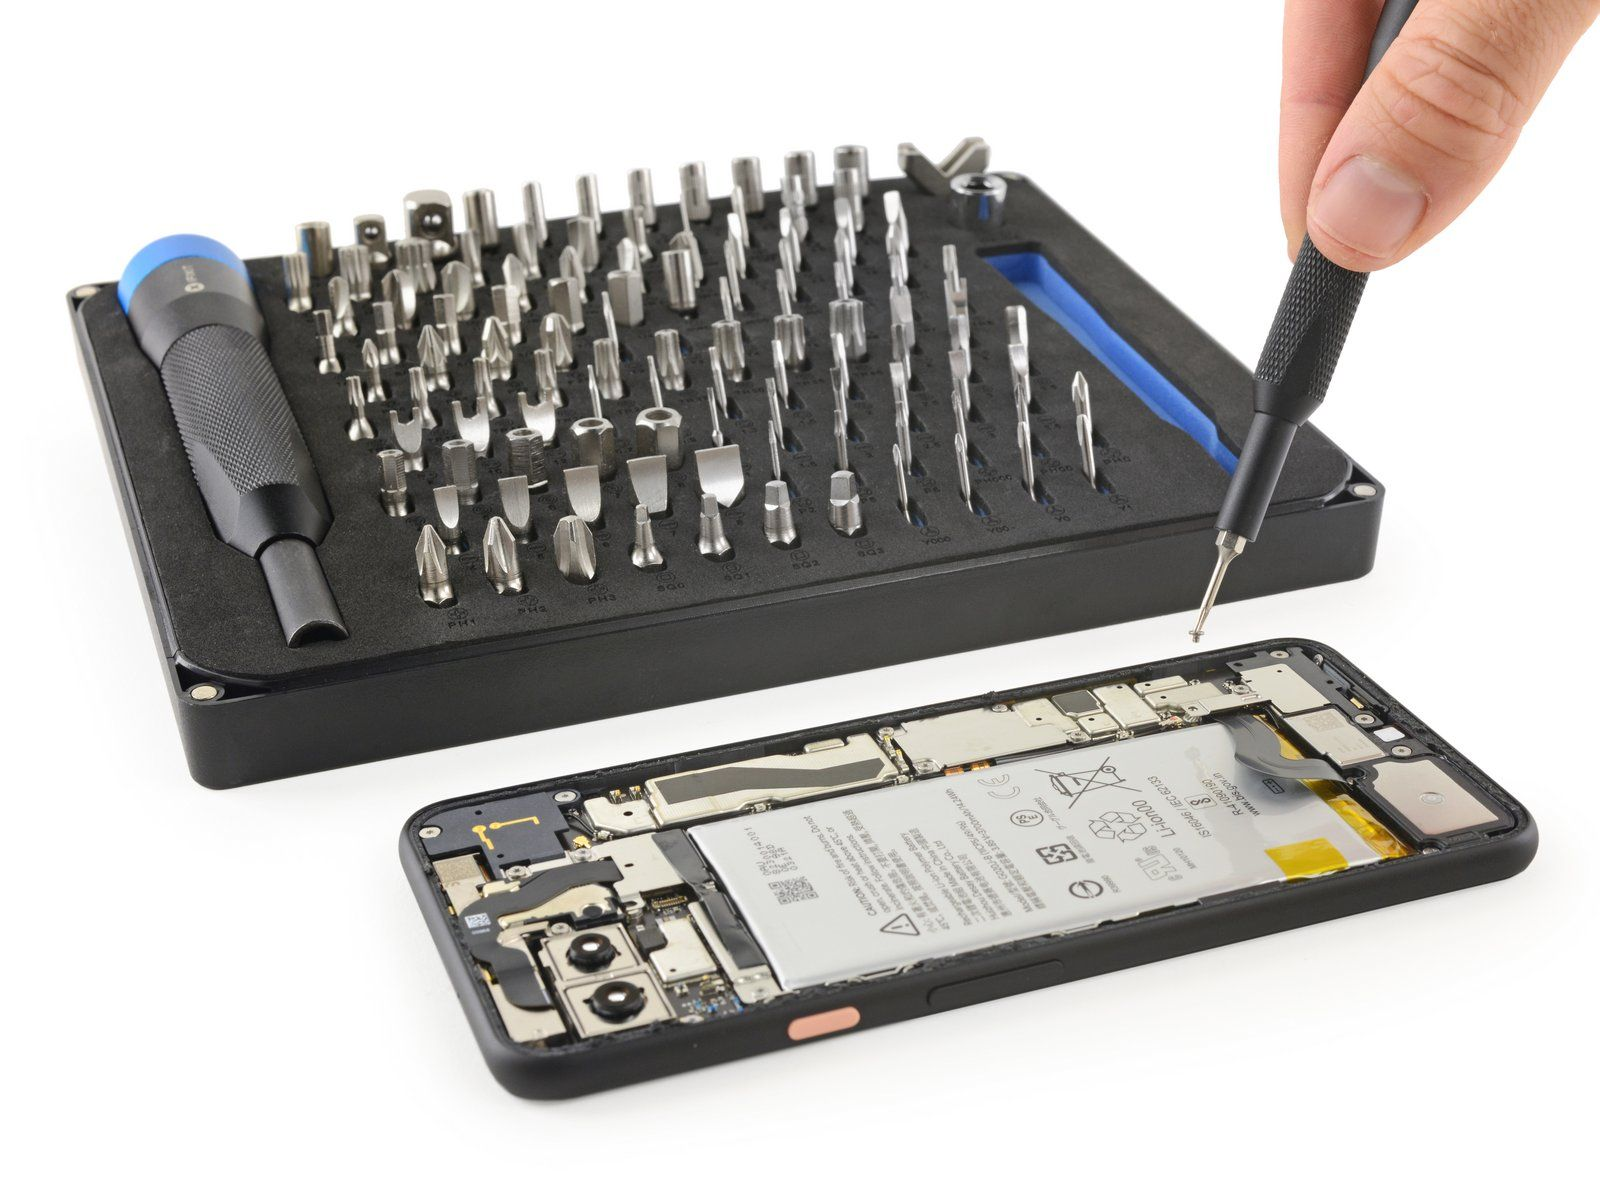 Ifixit On Twitter The Manta Driver Kit Is Built To Open Everything From Smartphones To Furniture Https T Co Kr0srxqudt